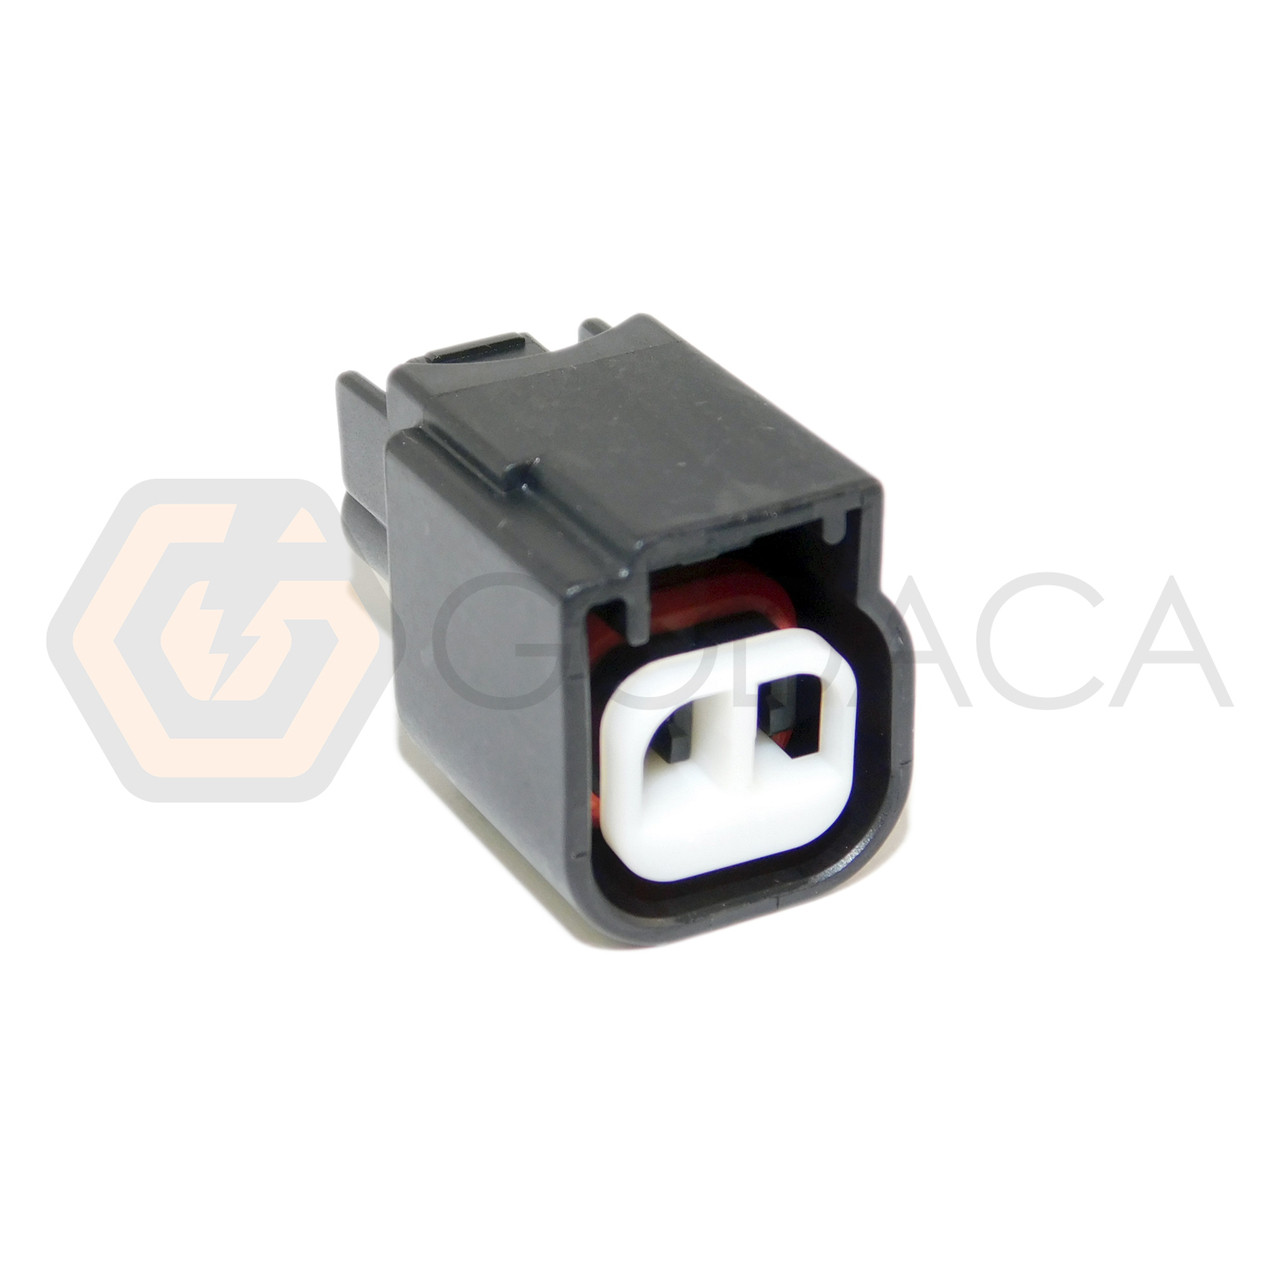 1x Connector 2-way 2 pin for Ford A/C Compressor WPT-1052 w/out wire